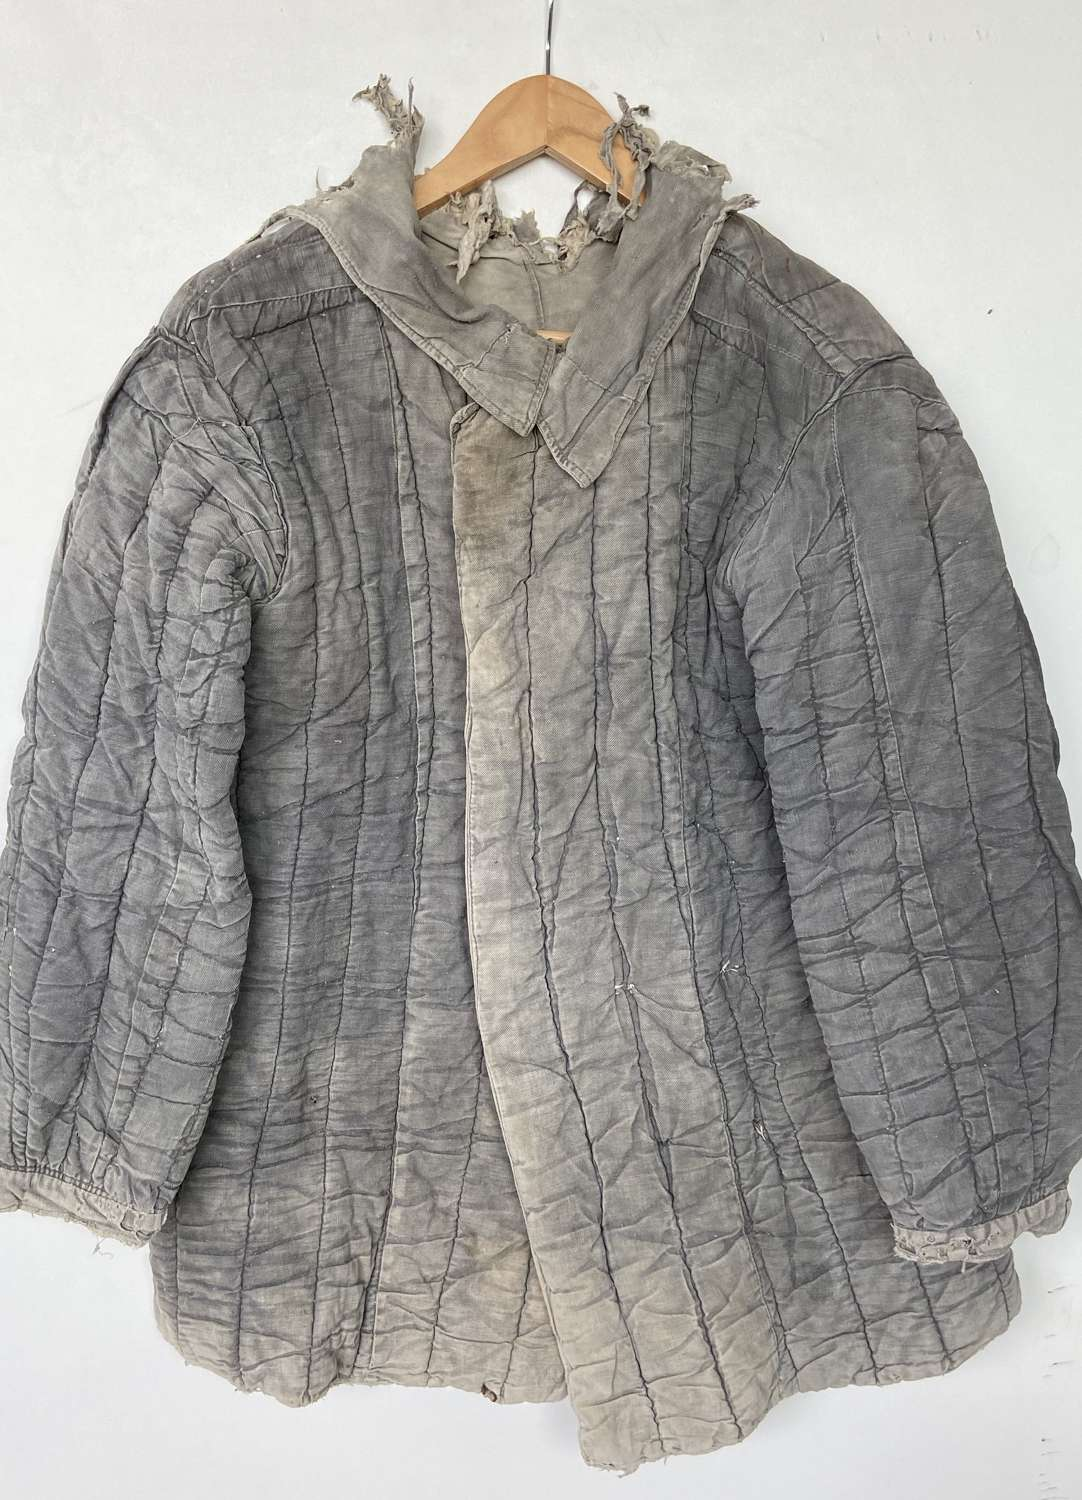 WW2 Telogreika Soviet Padded Jacket For German POW's In A Gulag